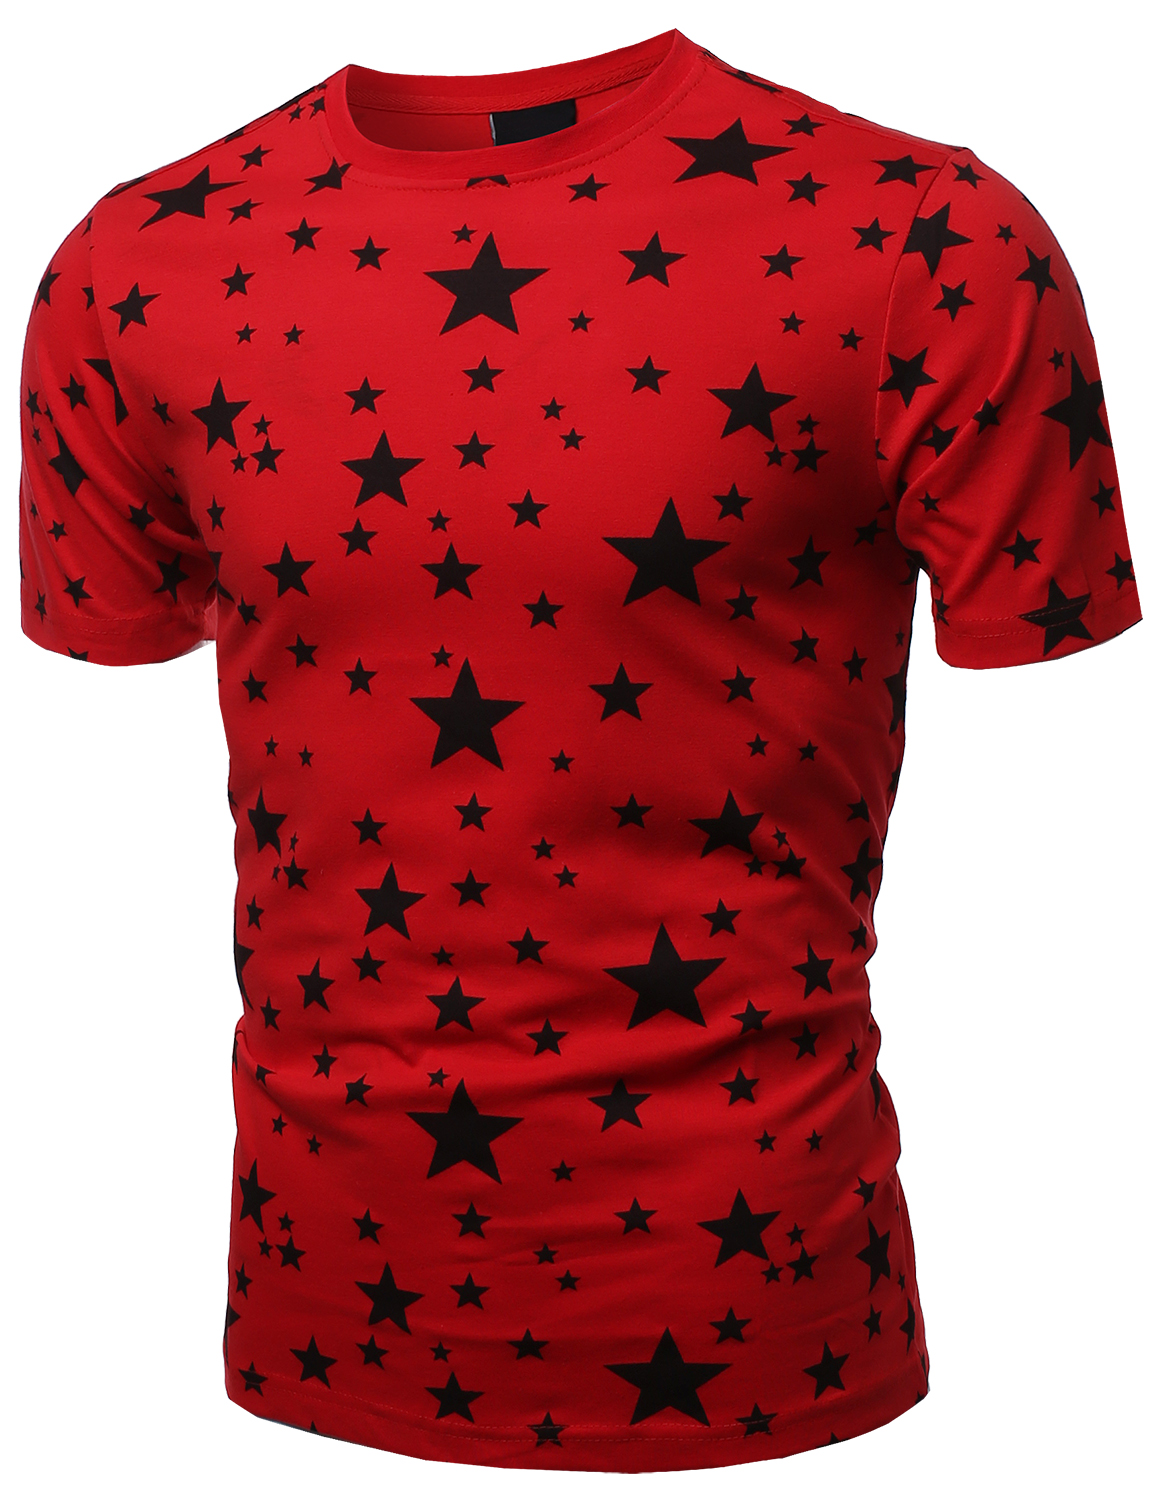 Fashionoutfit men 39 s casual stretch cotton round neck star for Mens shirt with stars